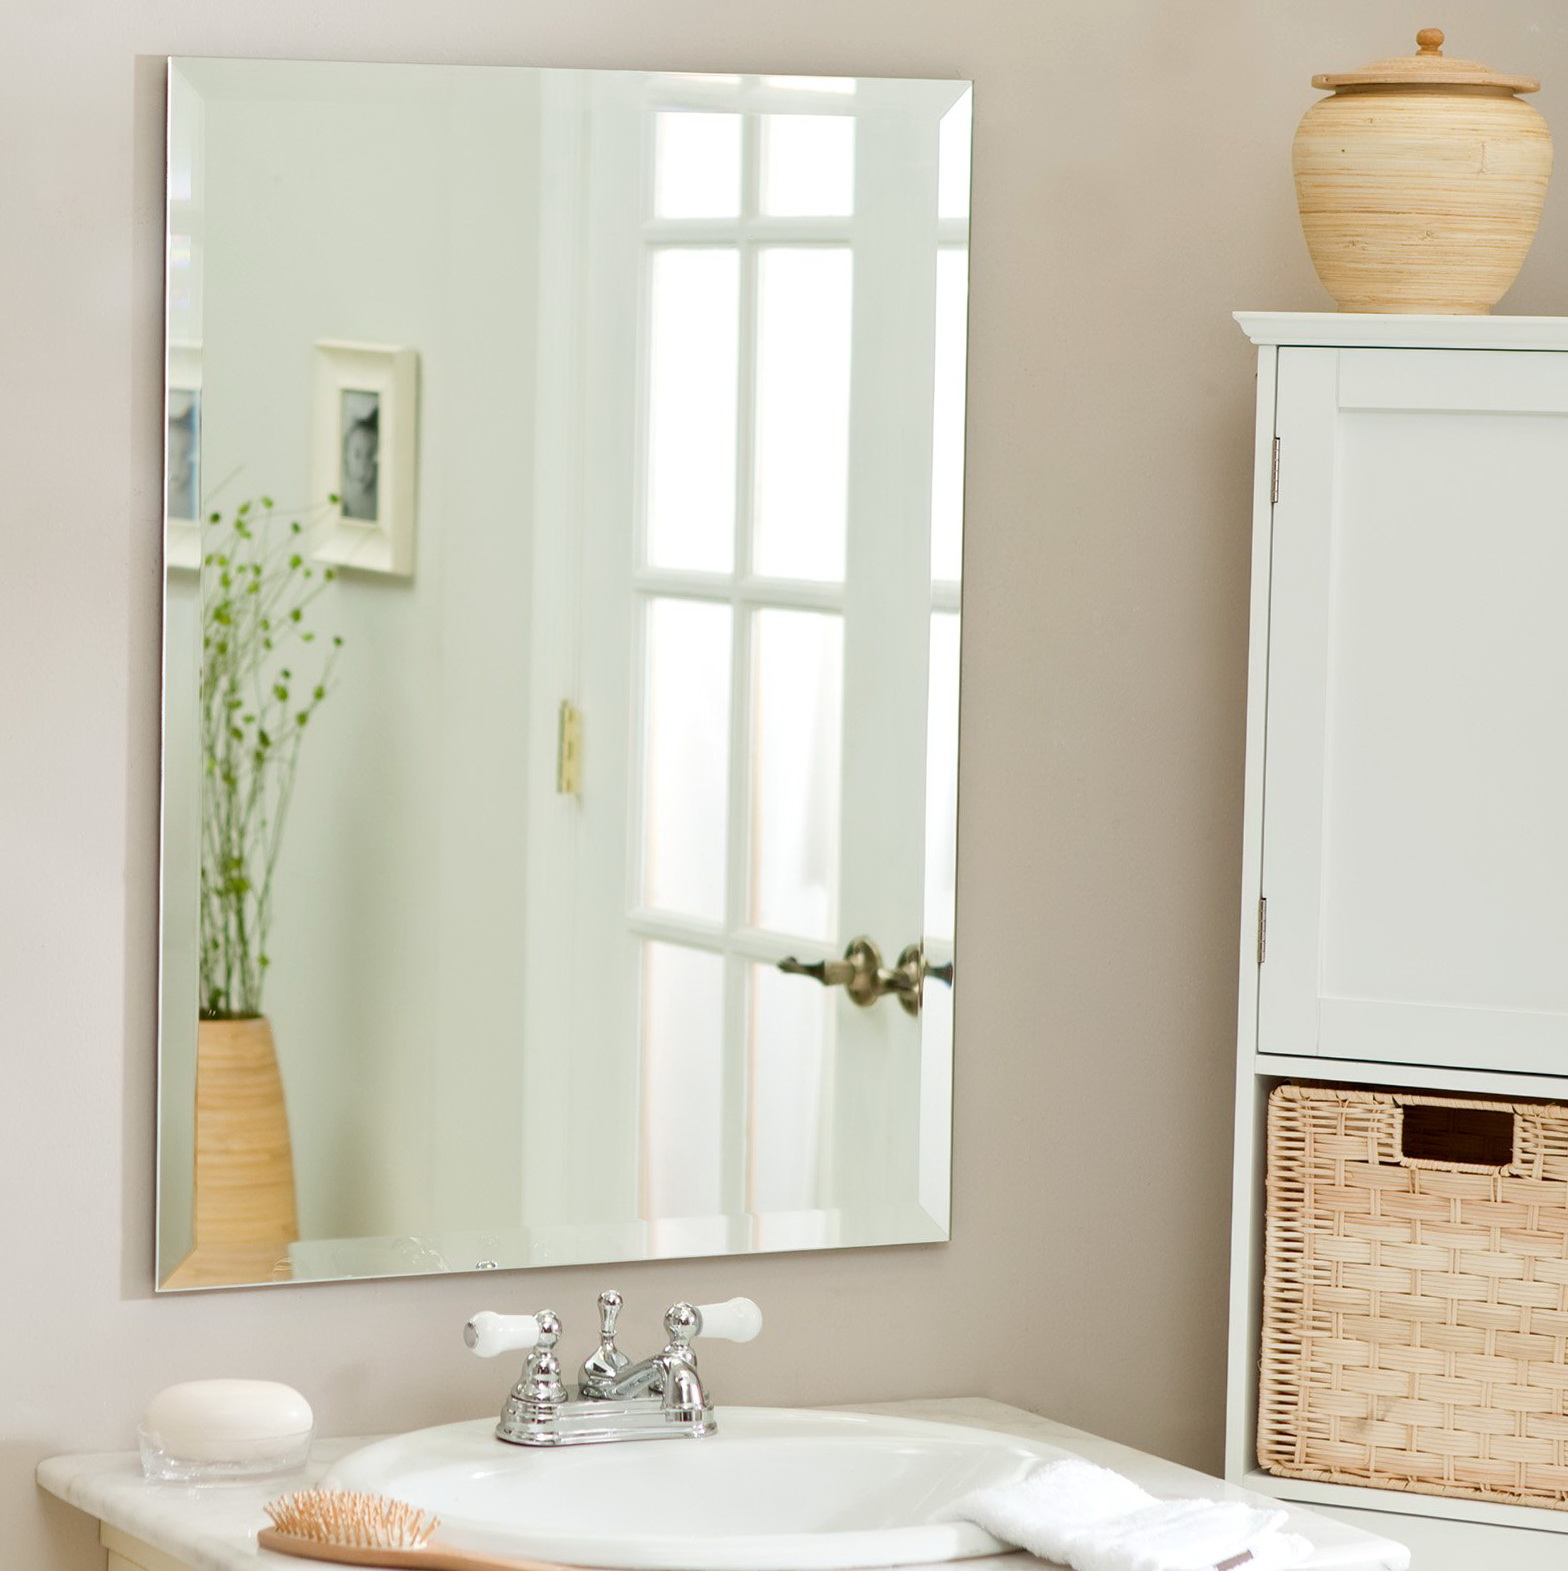 Bathroom Mirror Ideas On Wall Home Design Ideas